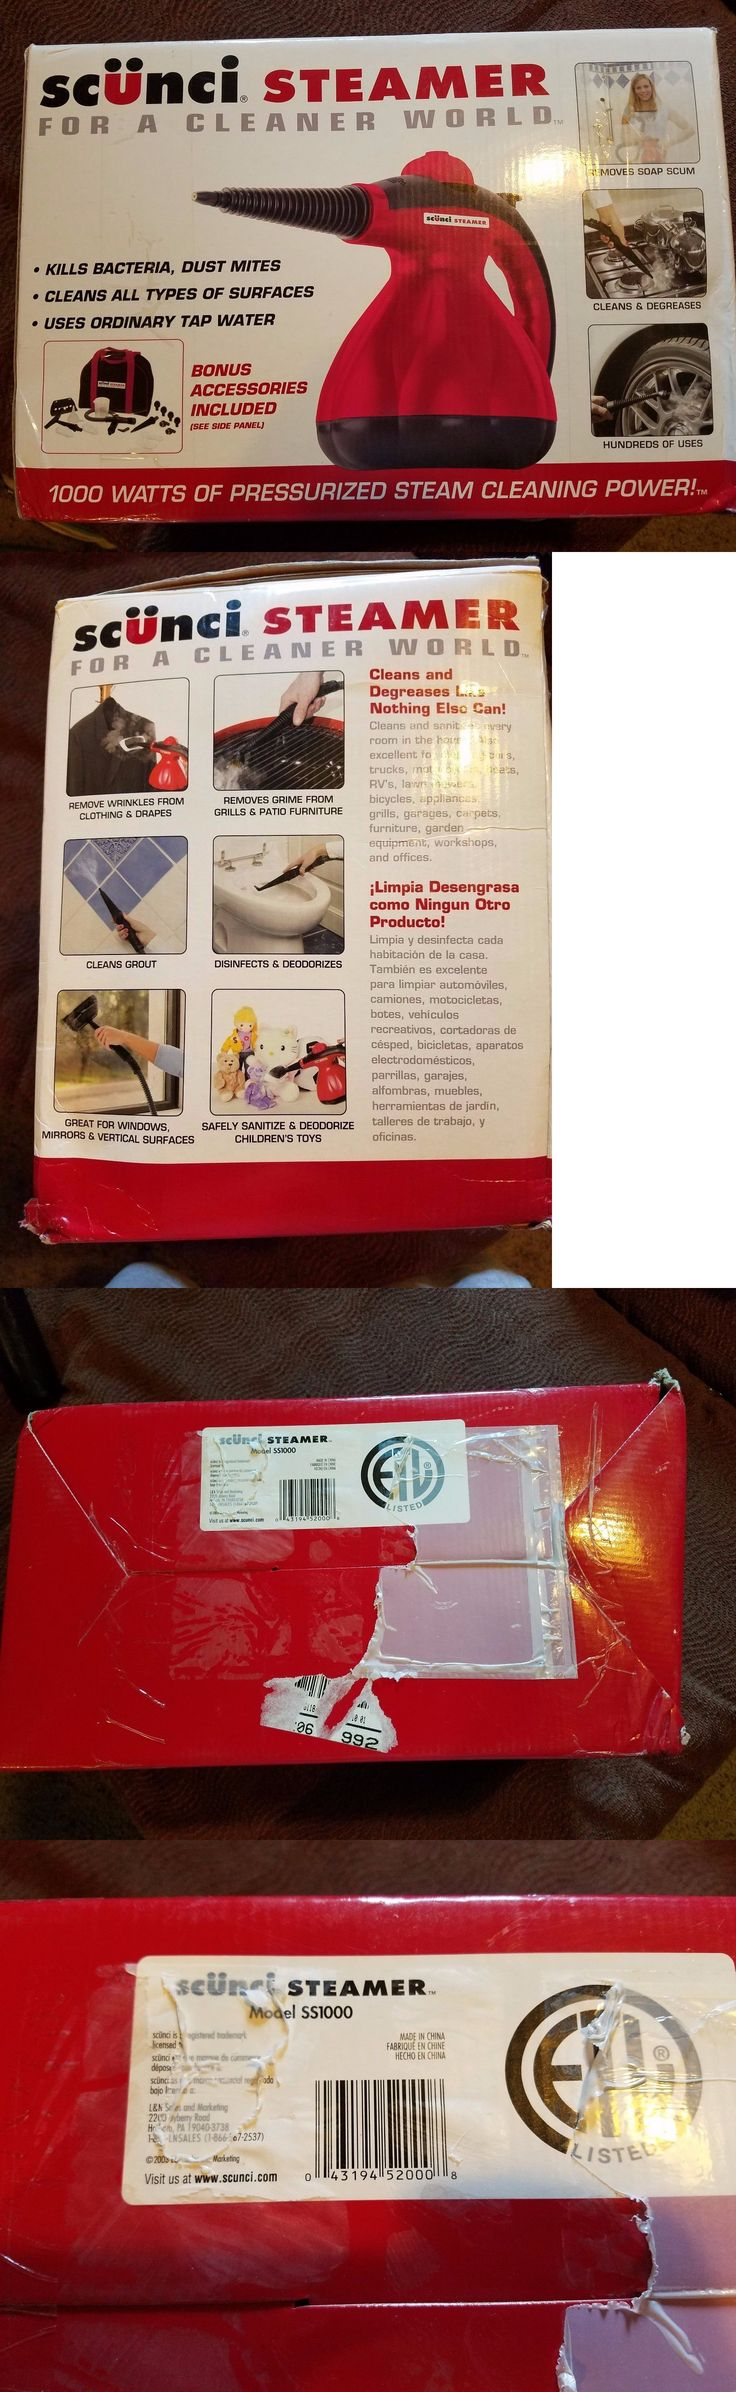 Carpet Steamers 79656: Scunci Steamer Ss 1000 With Attachments New Free Shipping! -> BUY IT NOW ONLY: $89.99 on eBay!